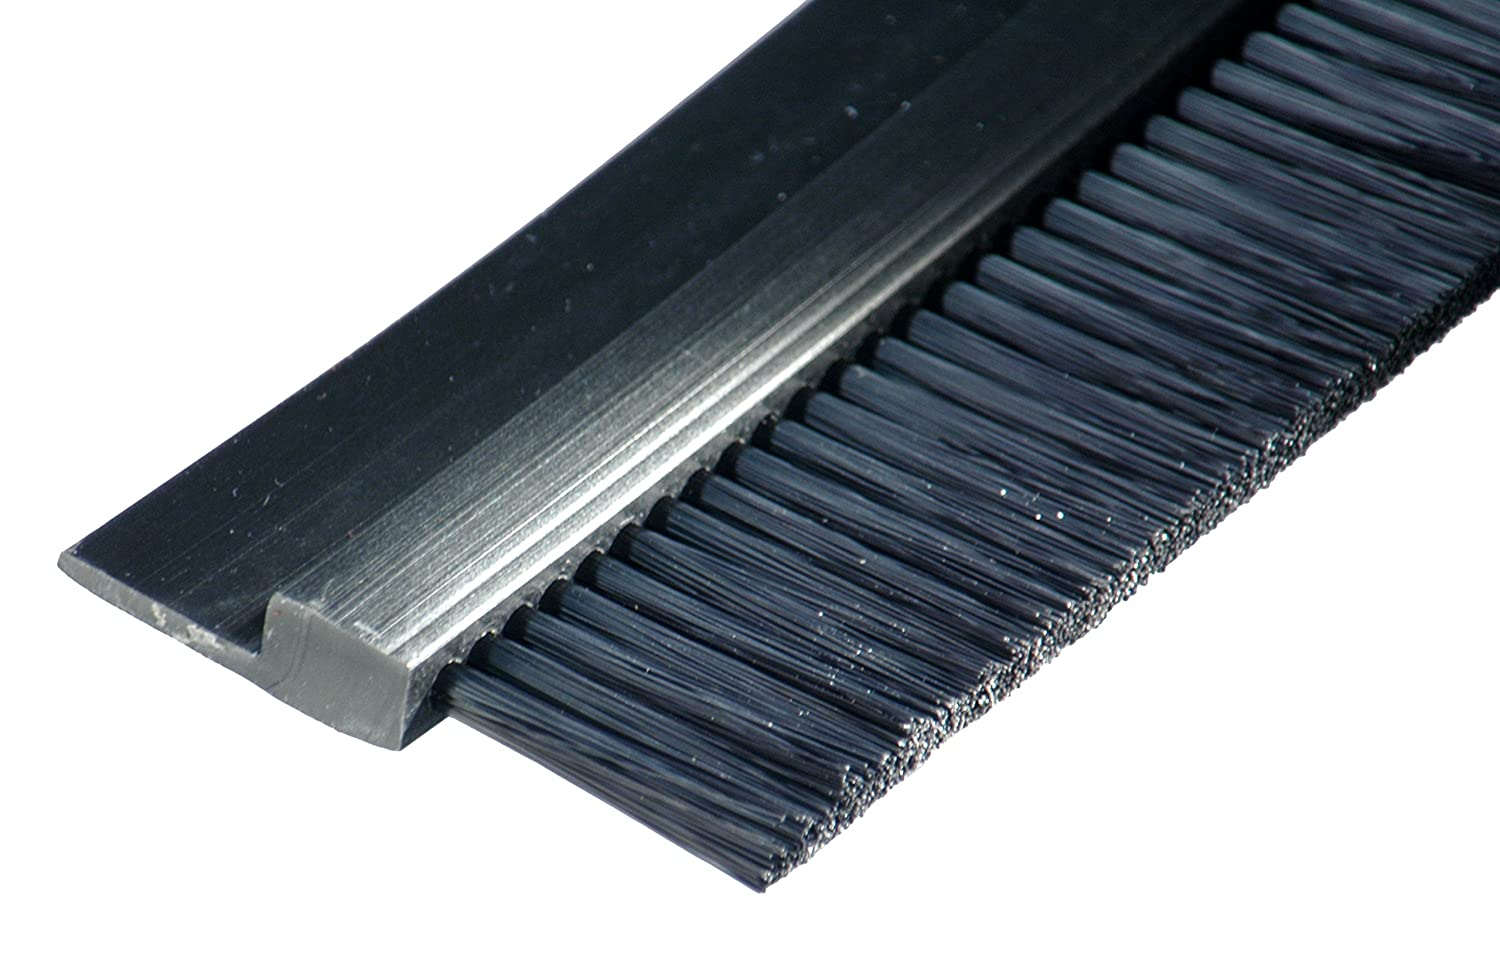 "Tanis Brush FPVC142036 Stapled Strip Brush with Flexible PVC, H-Shaped Profile, Black Nylon Bristles, 3' Overall Length, 2"" Trim Length, 3"" Overall Height"